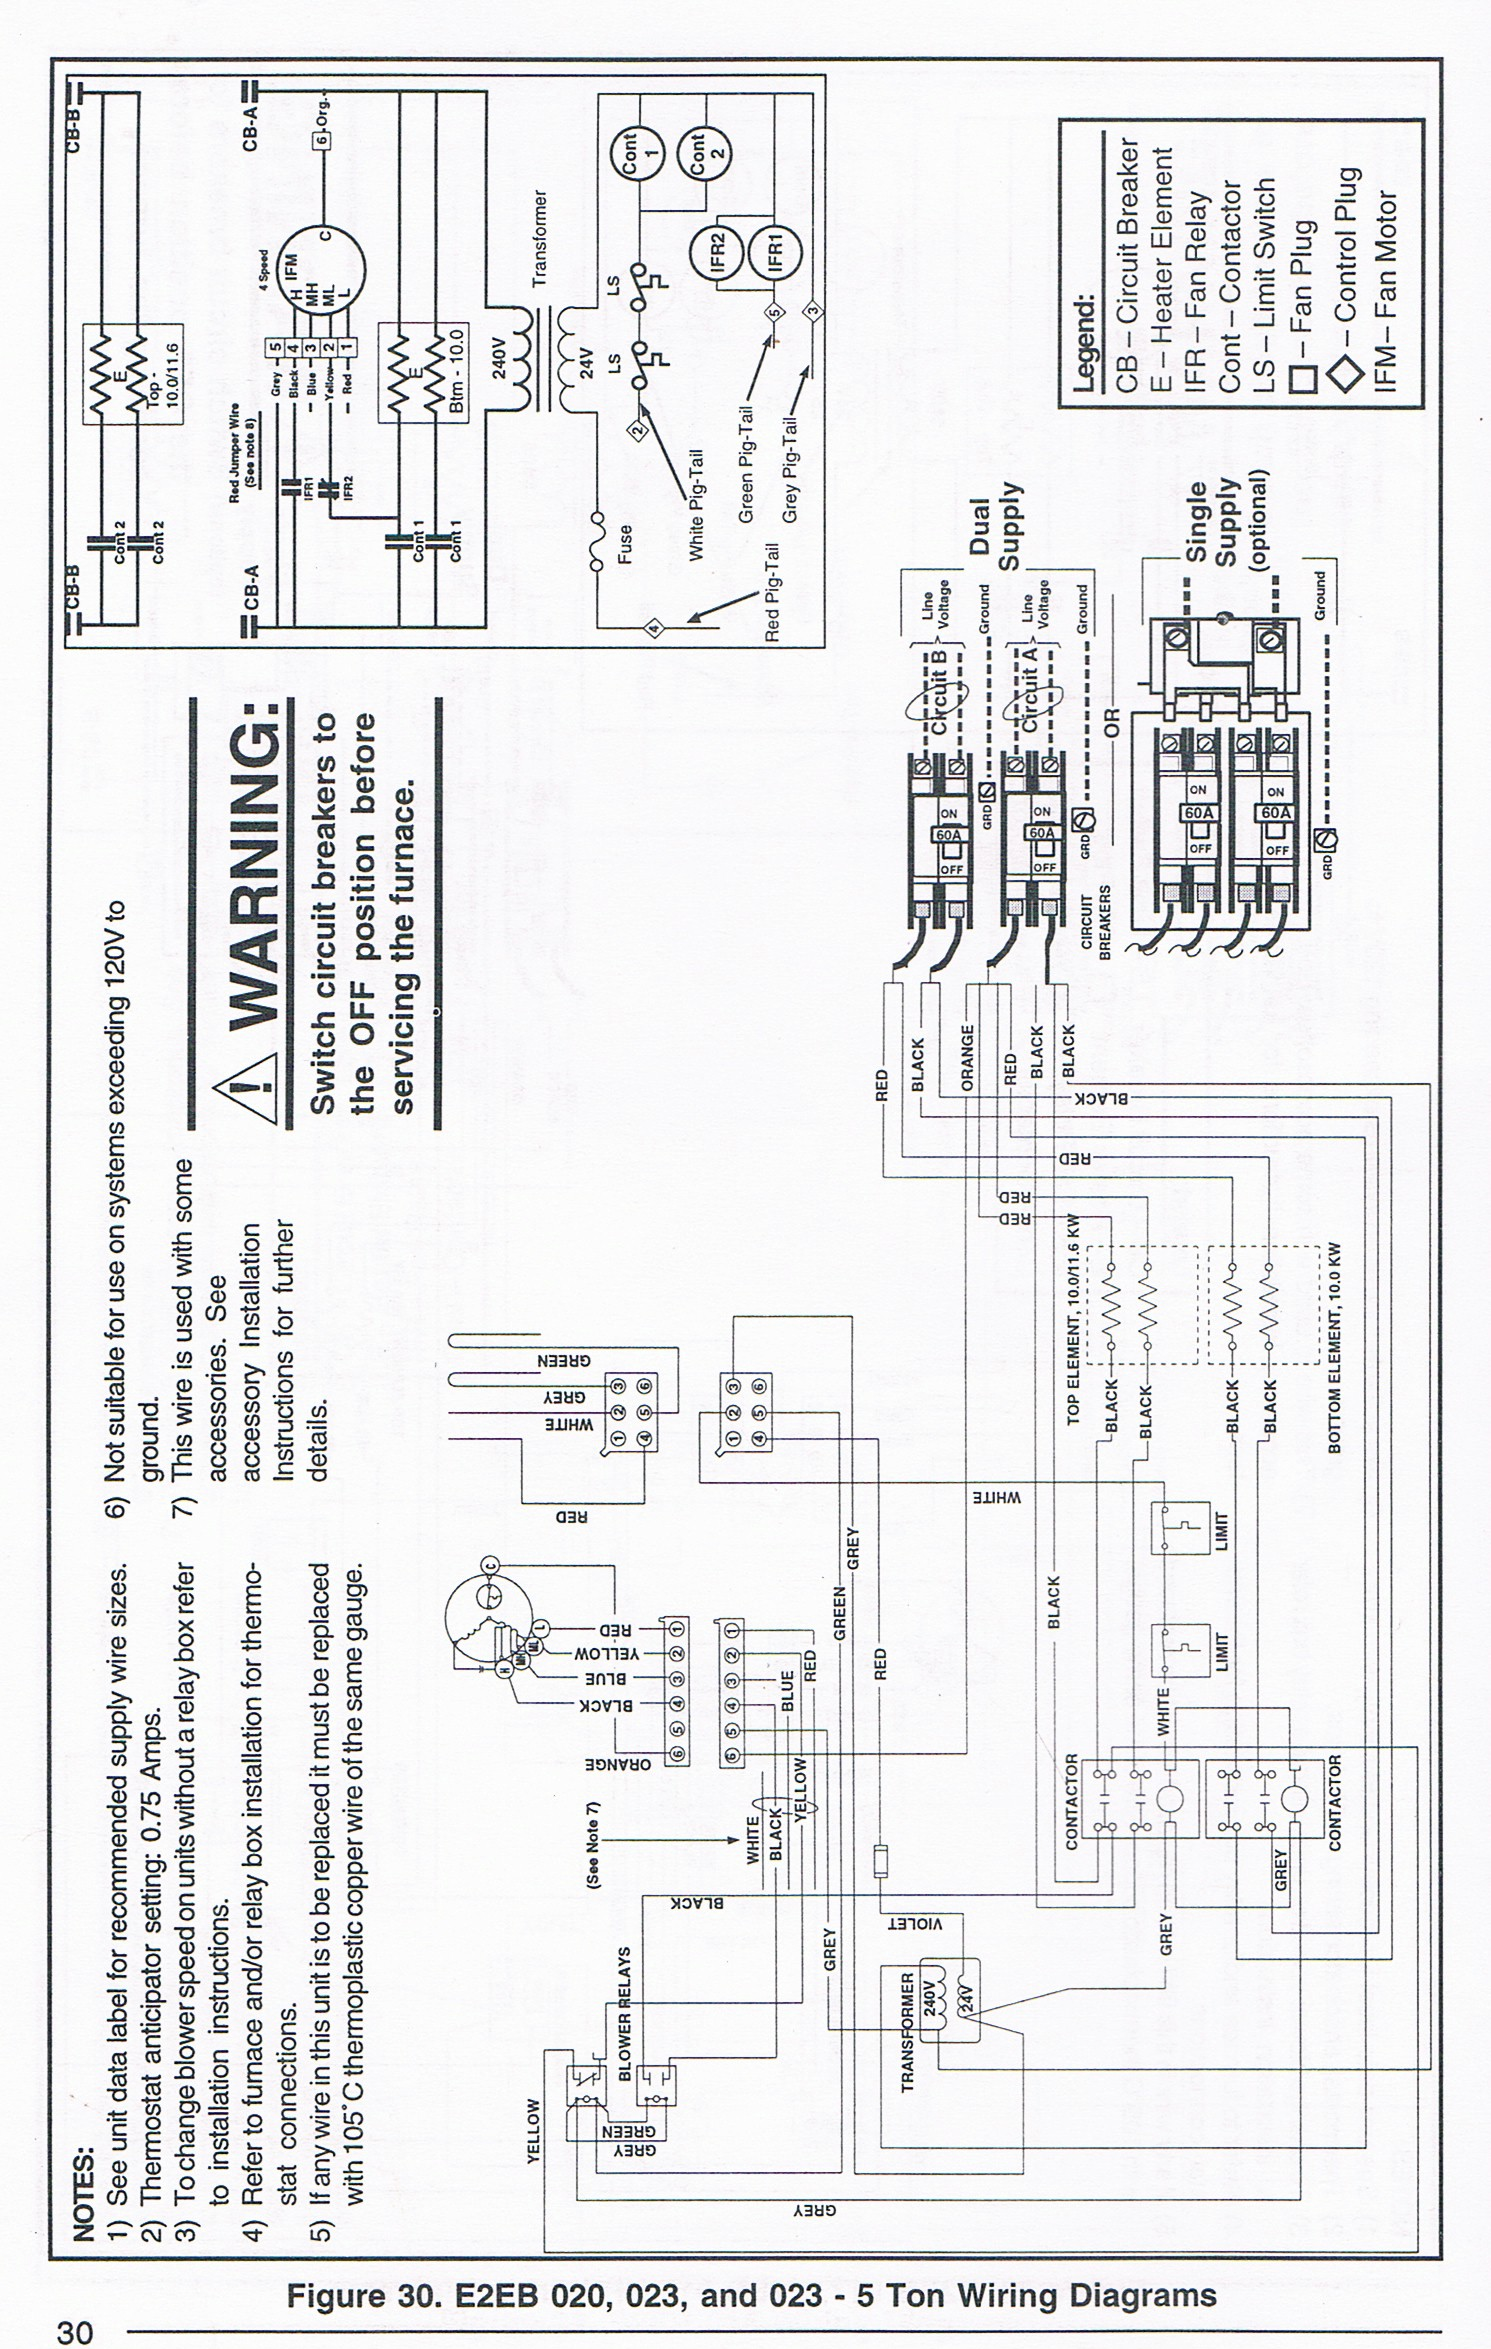 Wiring Diagram For 5 Ton Hvac Schematics Diagrams Goodman Fan Relay I Have A Nordyne E2eb Blower And The Motor Went Out Vehicle